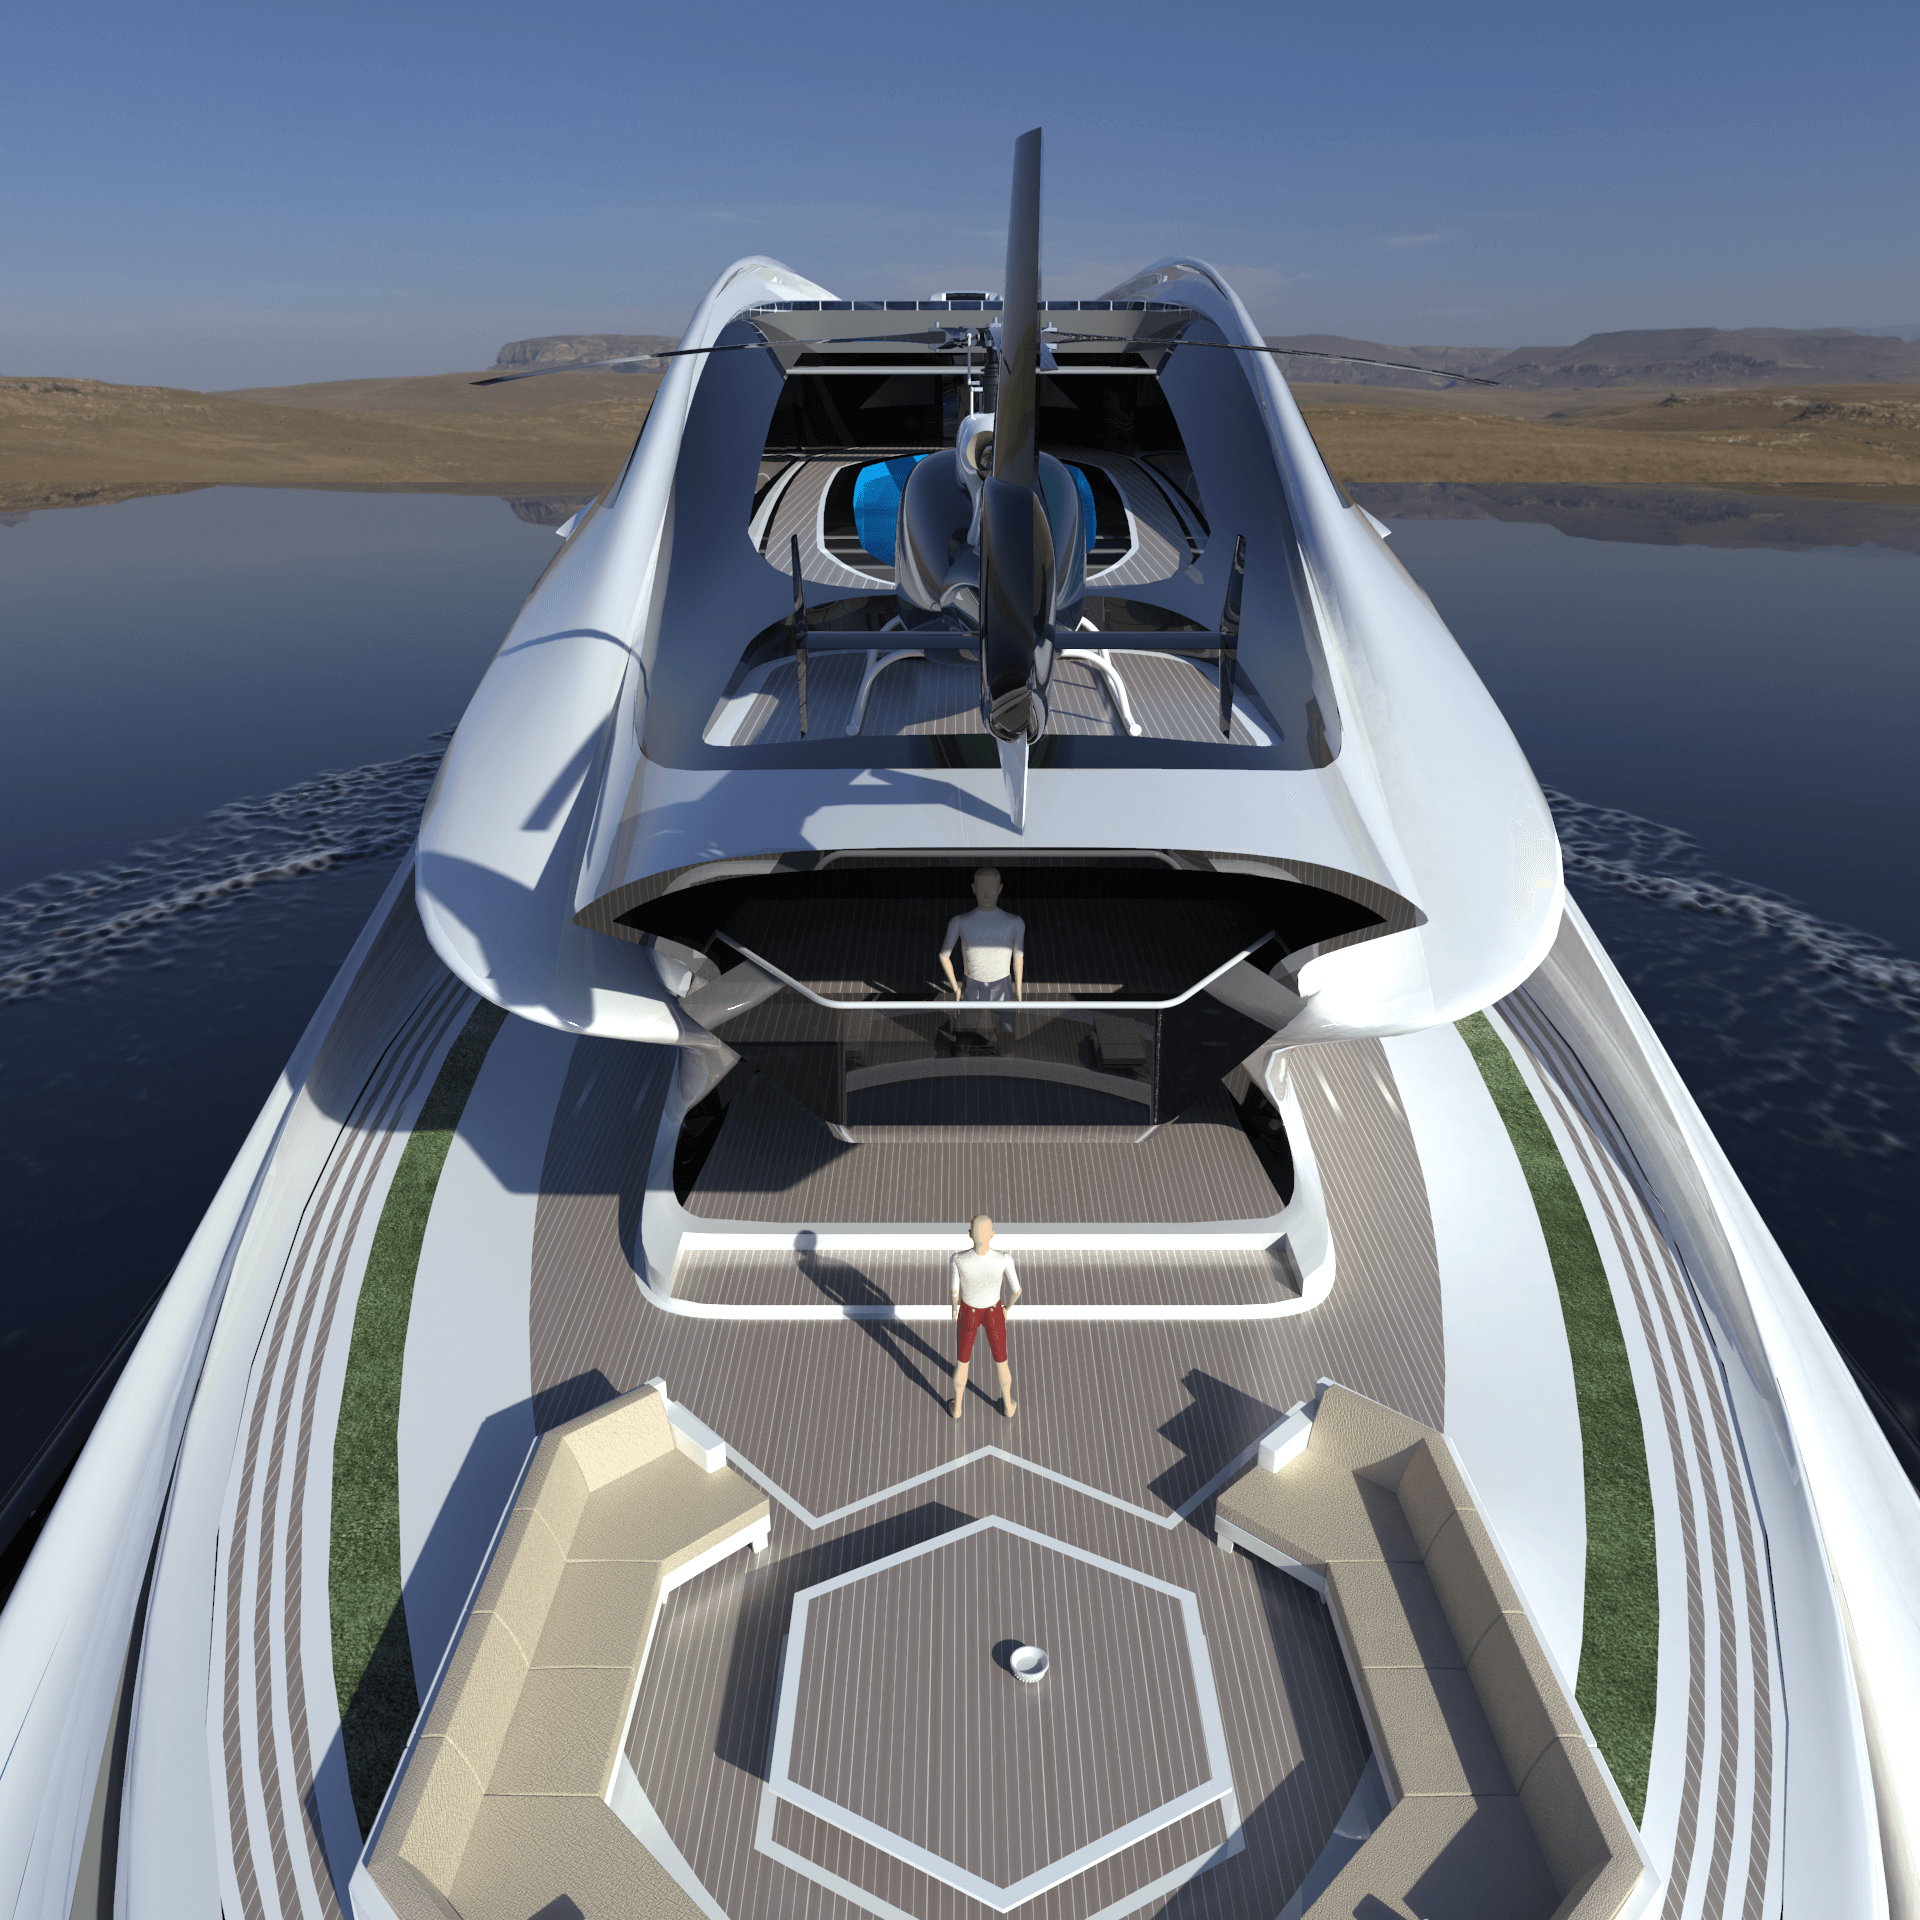 Superyacht Concept Avanguardia The Swan by Lazzarini Studio Design Main Living Deck